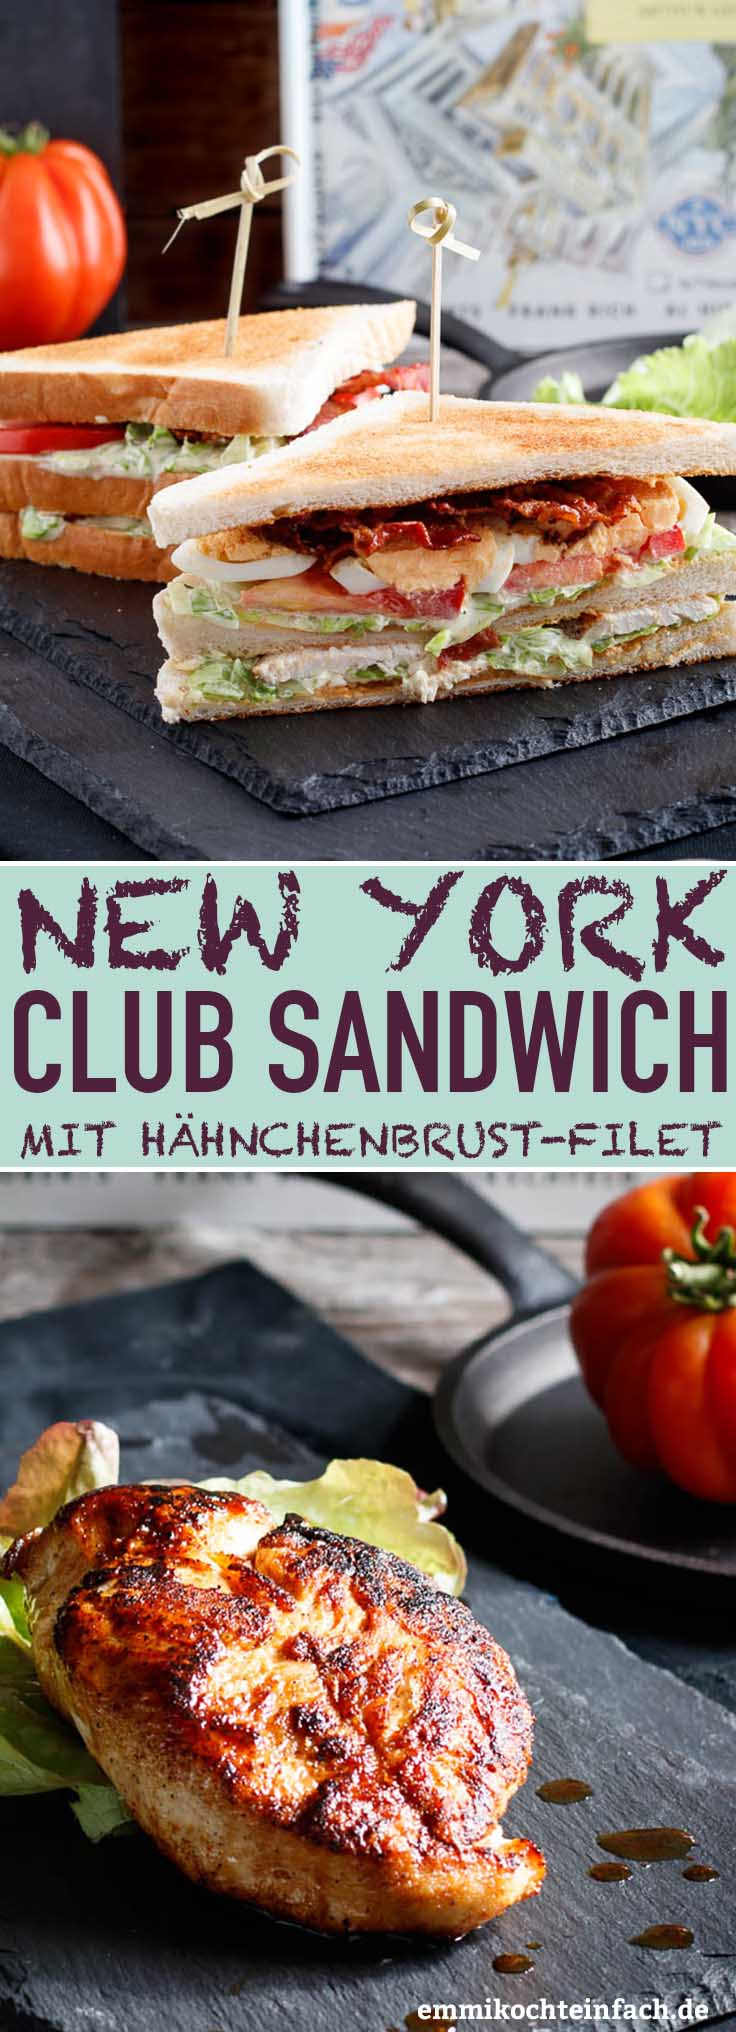 New York Club Sandwich - www.emmikochteinfach.de